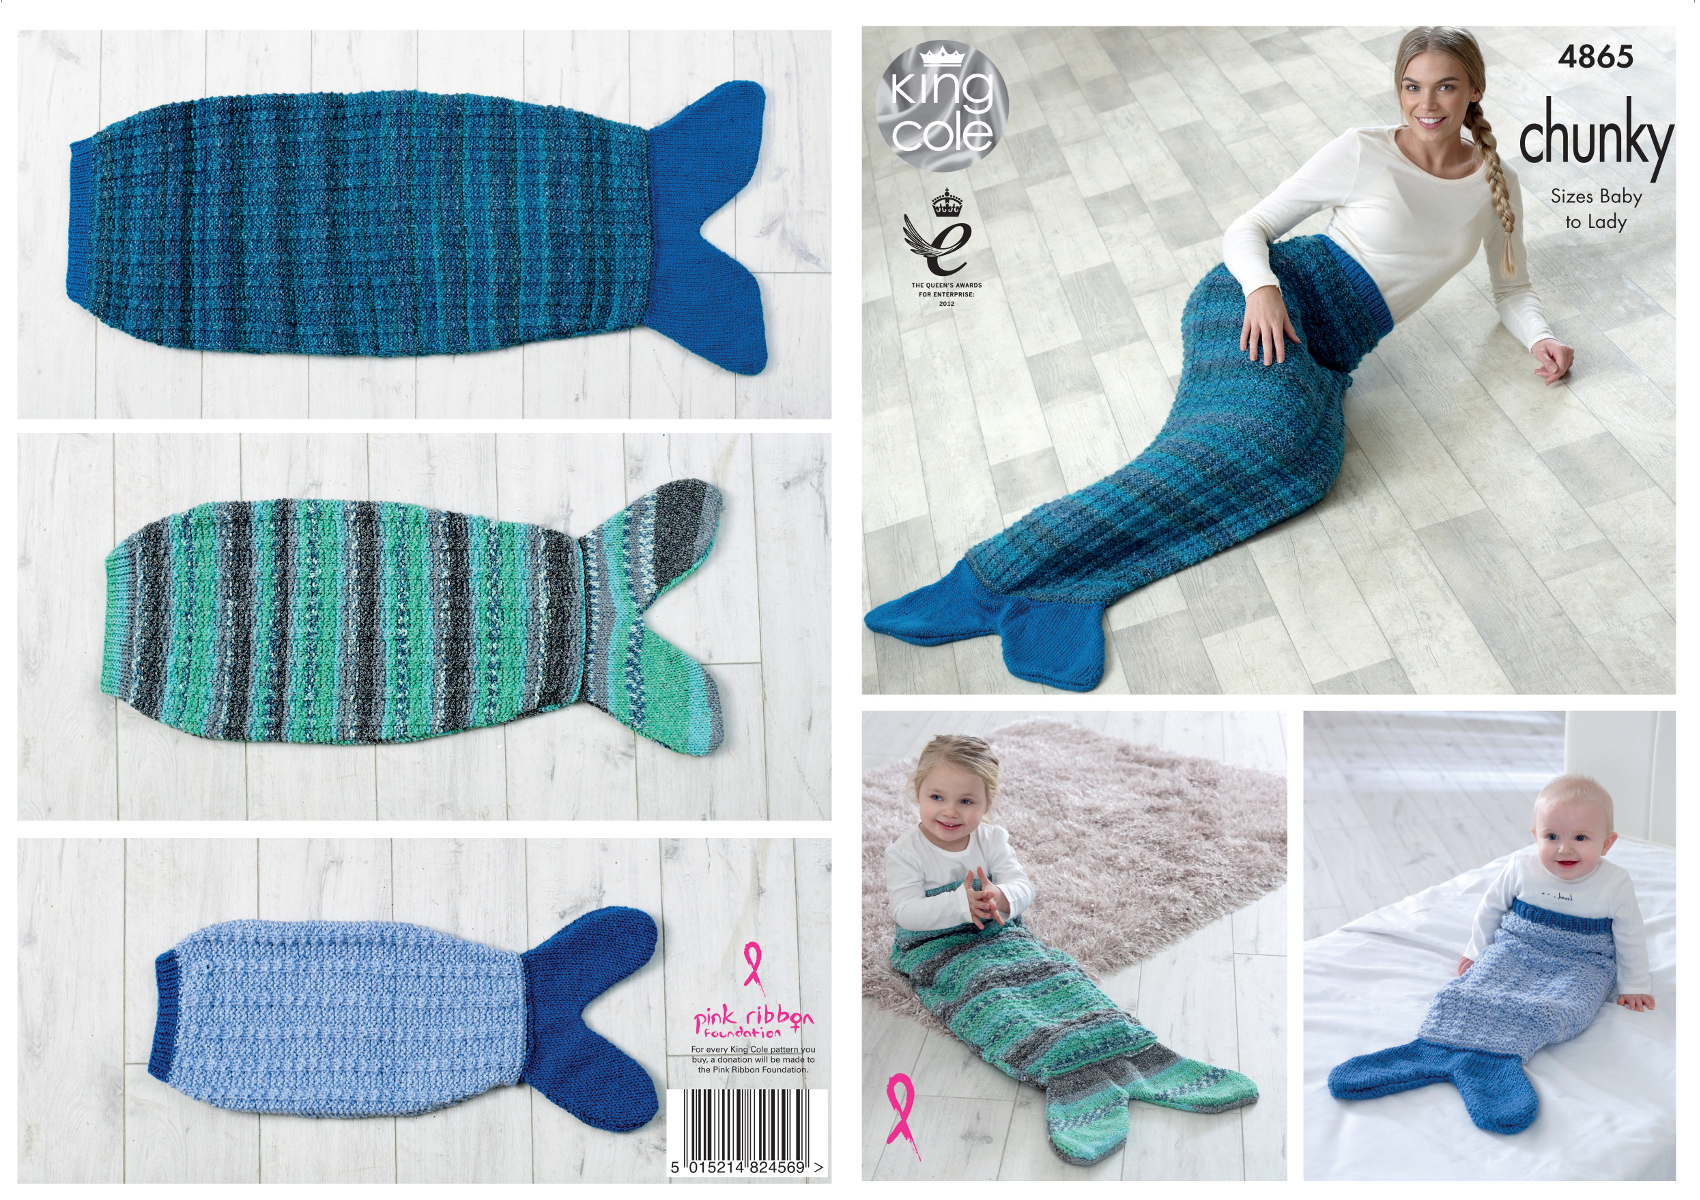 Knitting Pattern Mermaid Tail For Babies : King Cole Chunky Knitting Pattern Ladies Kids Babies Mermaid Tail Blankets 48...